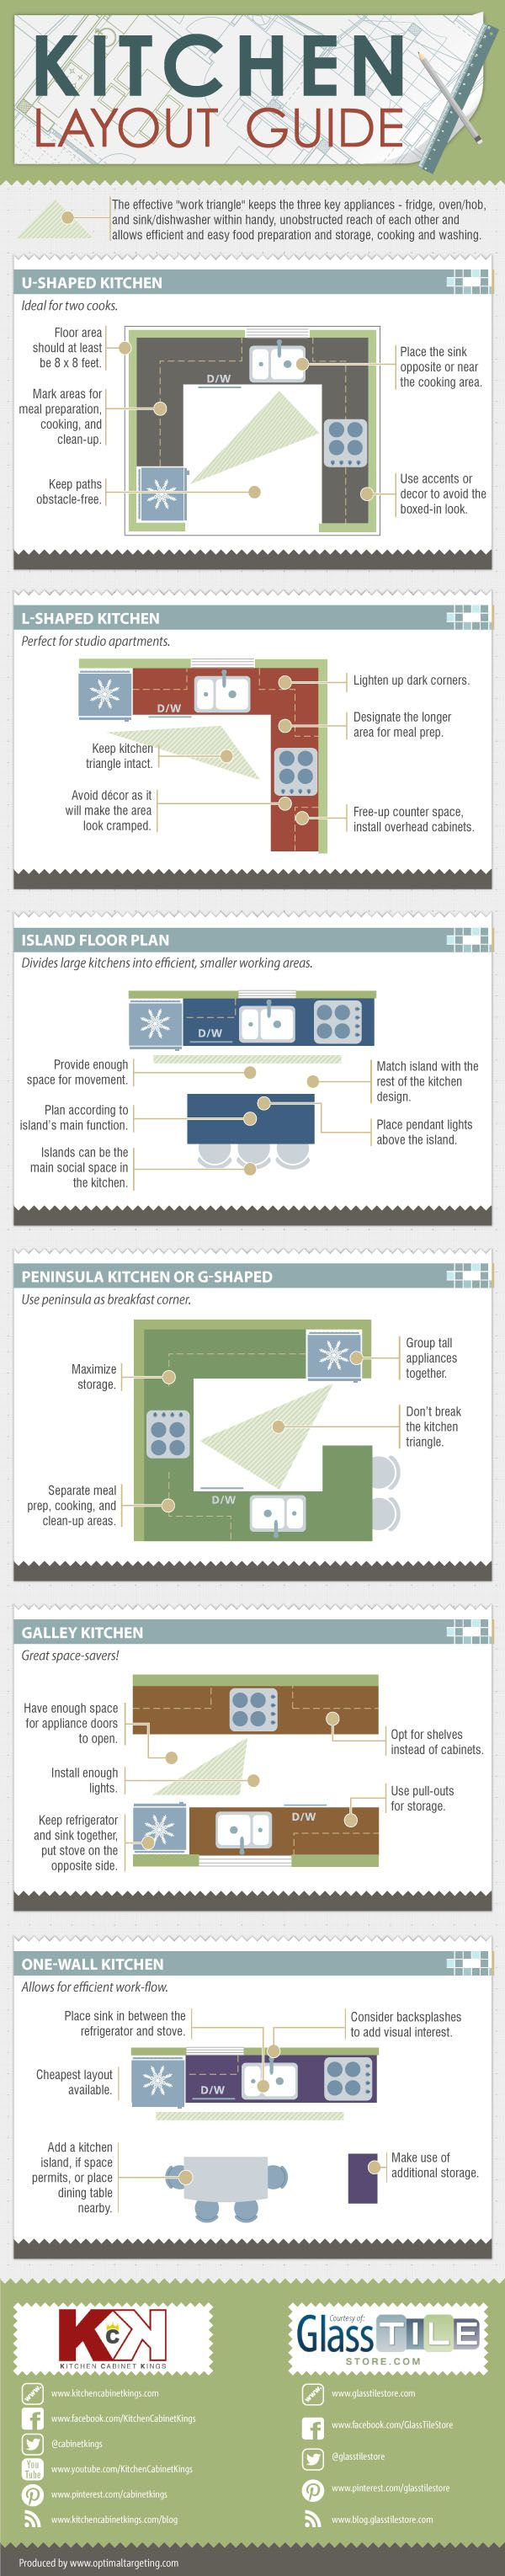 Permalink to Kitchen Layouts How to Choose a Kitchen Layout Based on the Fridge Oven Sink Wor…